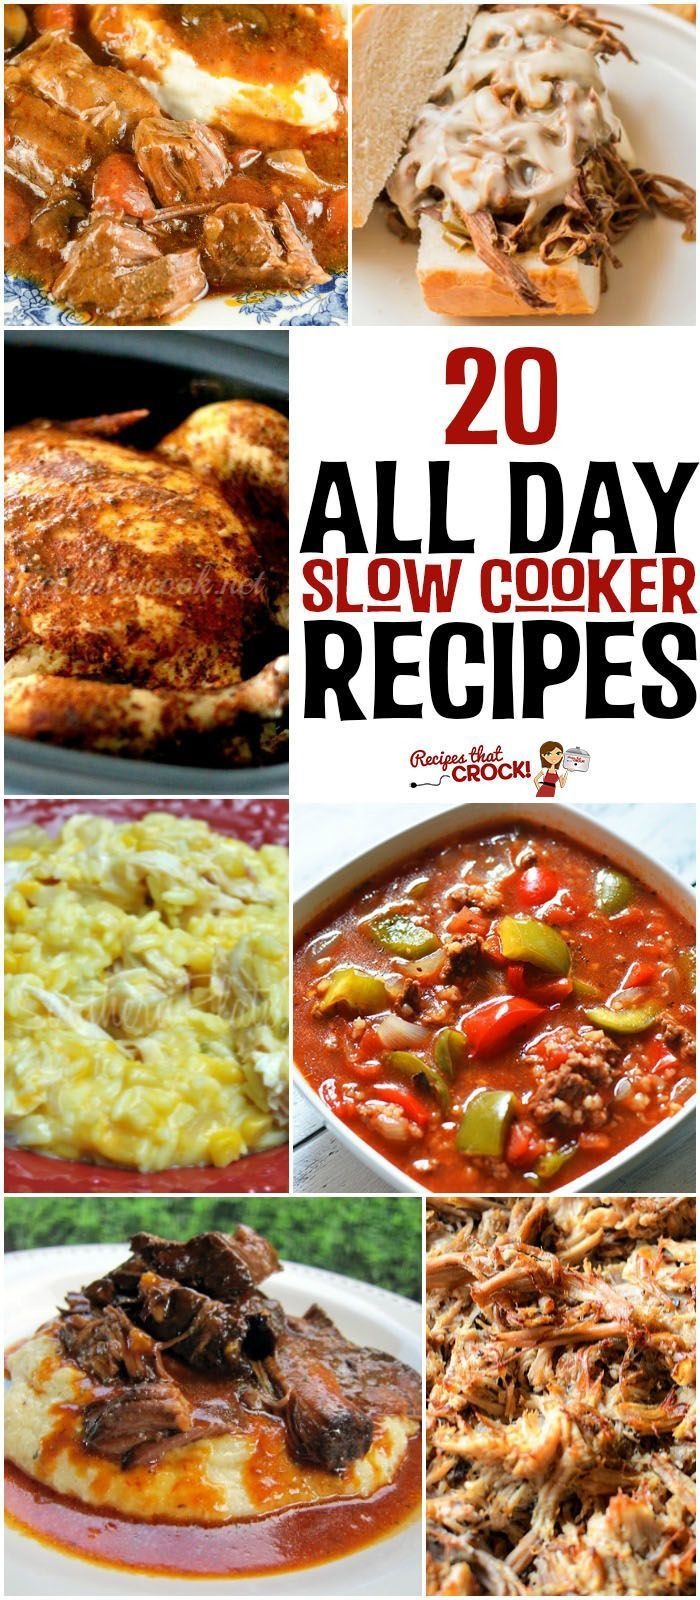 20 ALL DAY Slow Cooker Recipes